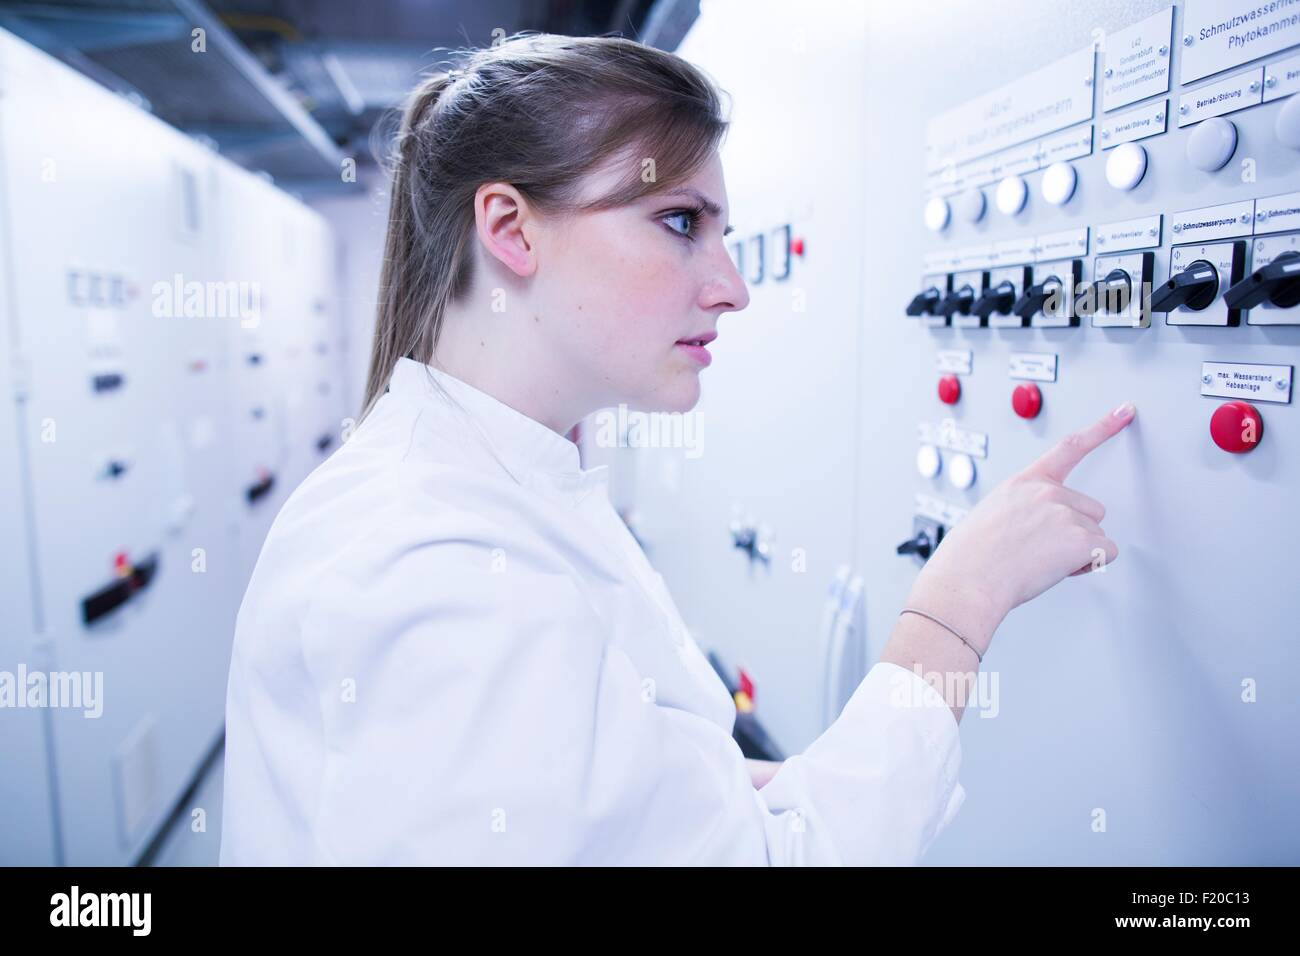 Young female scientist pointing at machine in technical room - Stock Image